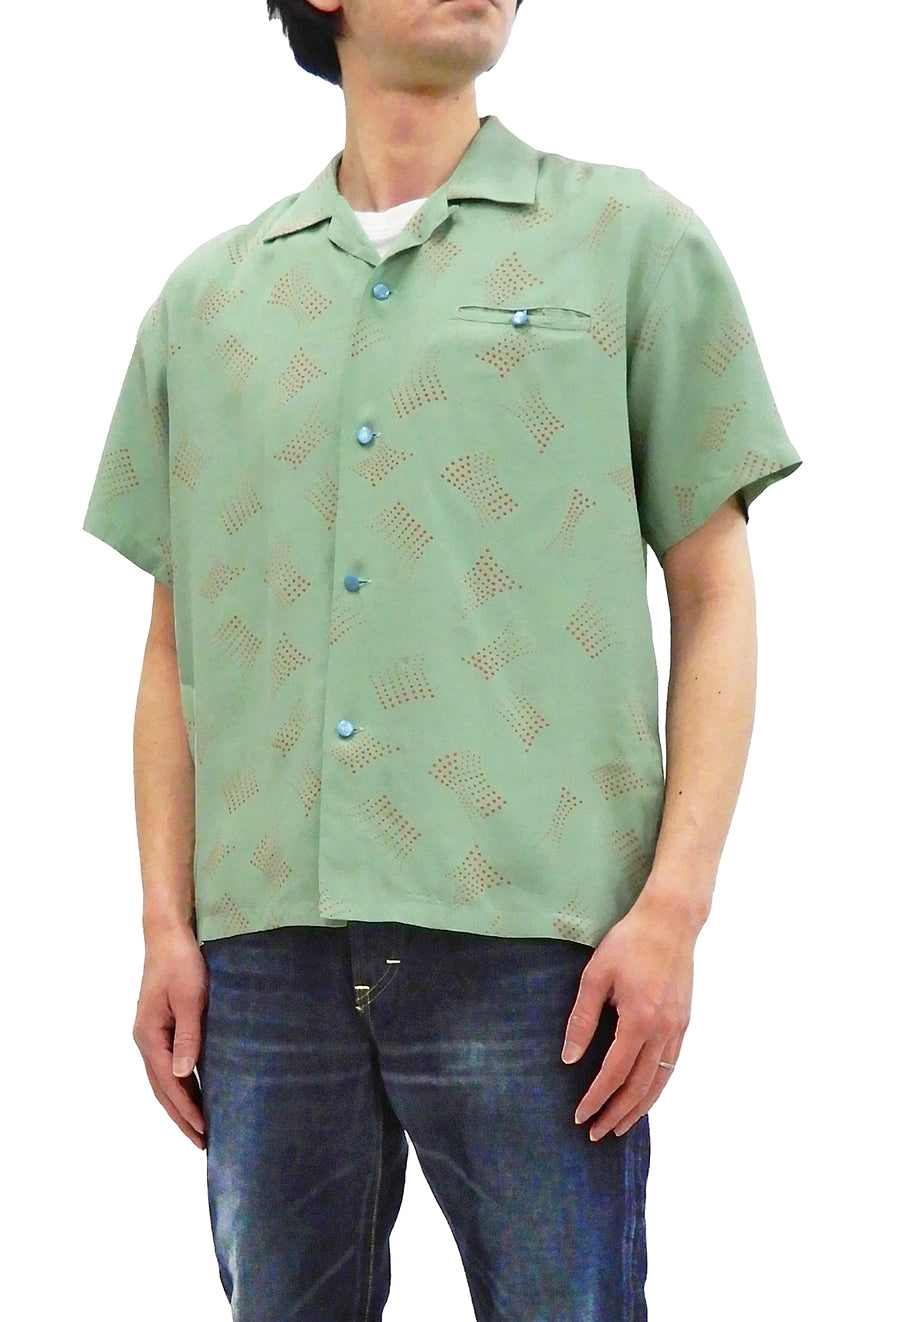 Star of Hollywood Shirt Men's 1950s Style Short Sleeve Button Up Shirt SH38385 Mint-Green